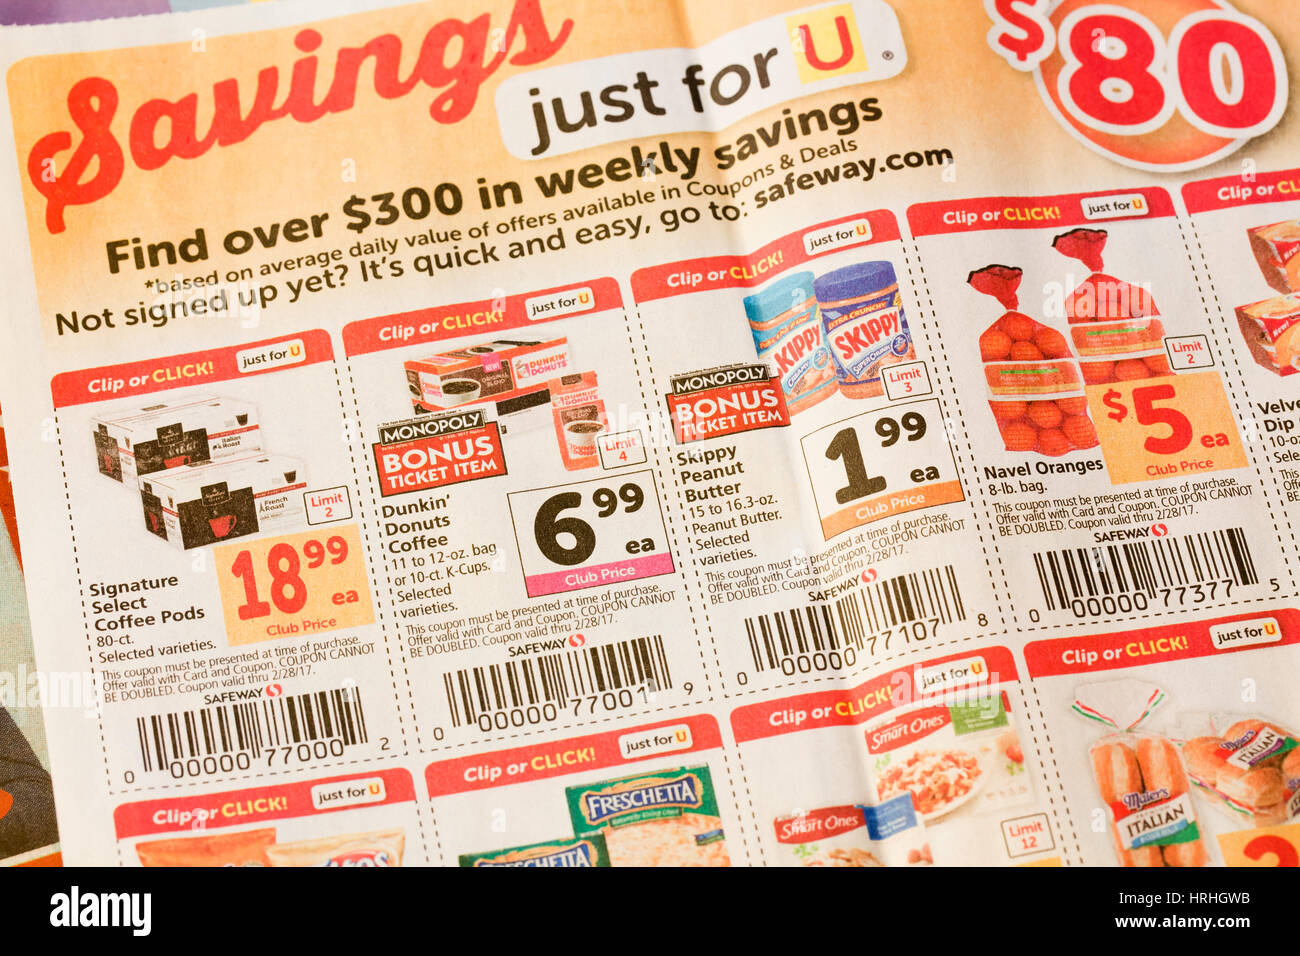 Grocery Store Mailer Coupons In Newspaper Usa Stock Photo